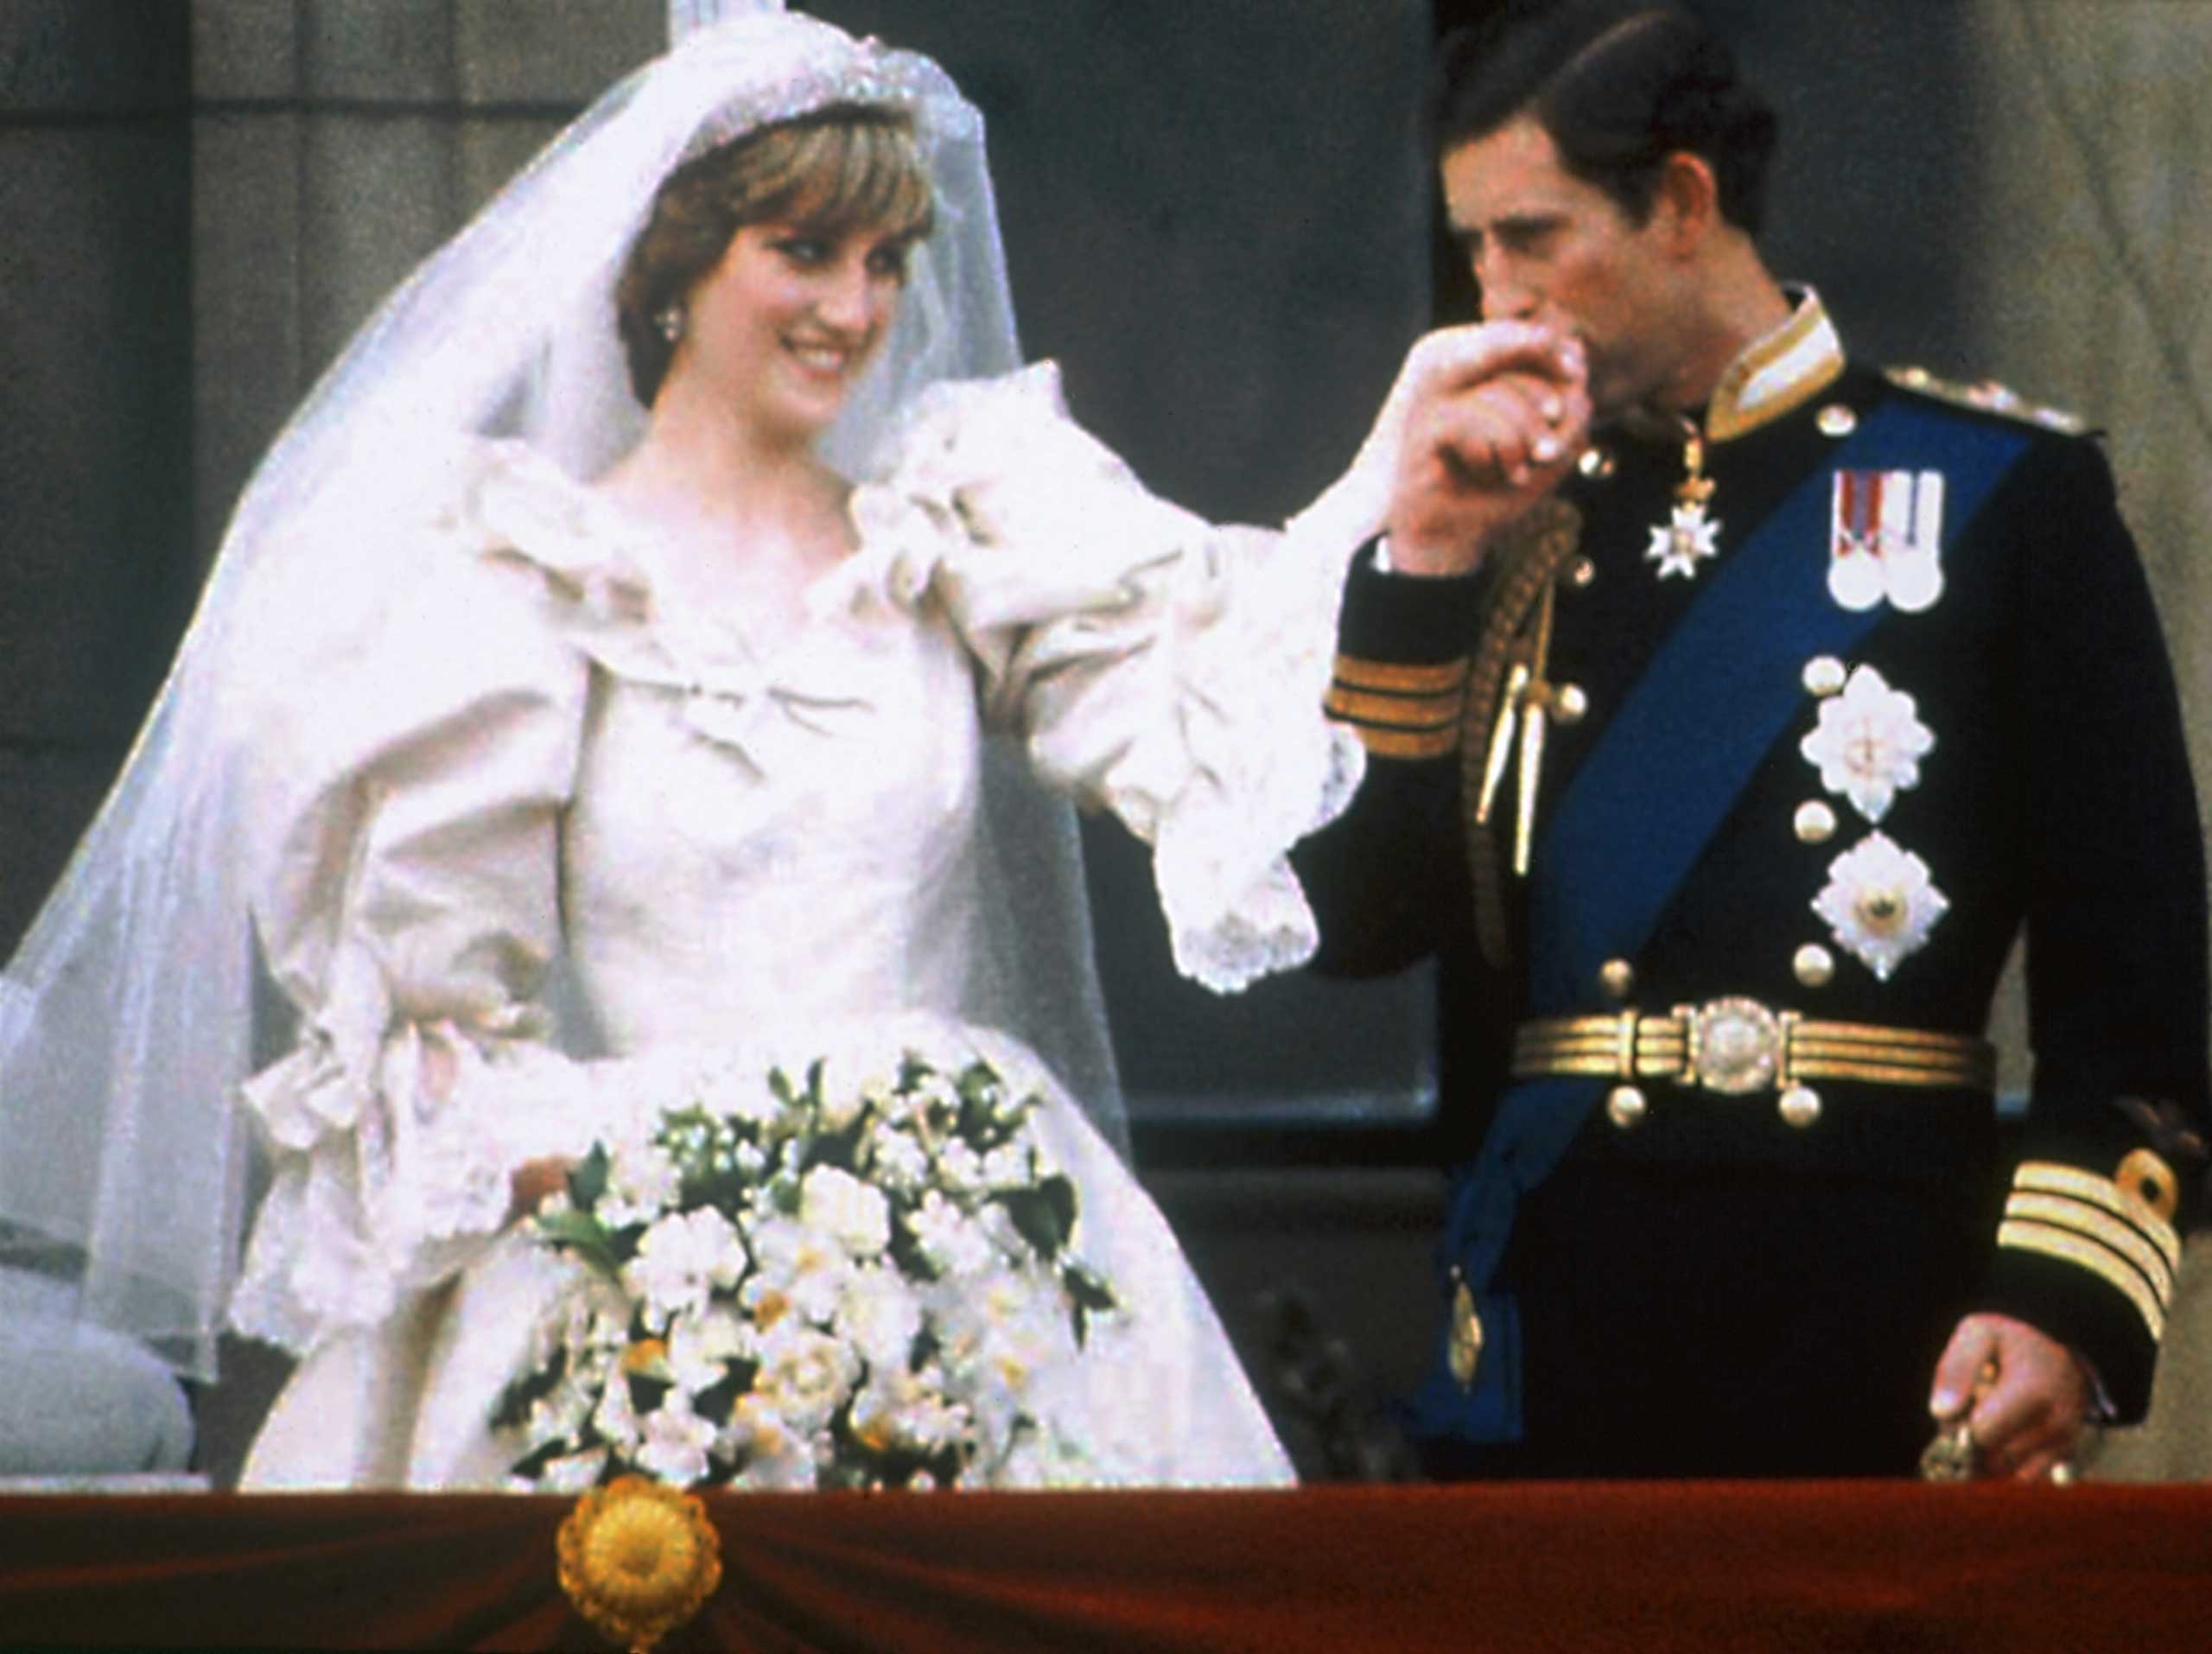 Charles, Prince of Wales, and Lady Diana Spencer on their wedding day at St Paul's Cathedral, London on July 29, 1981.